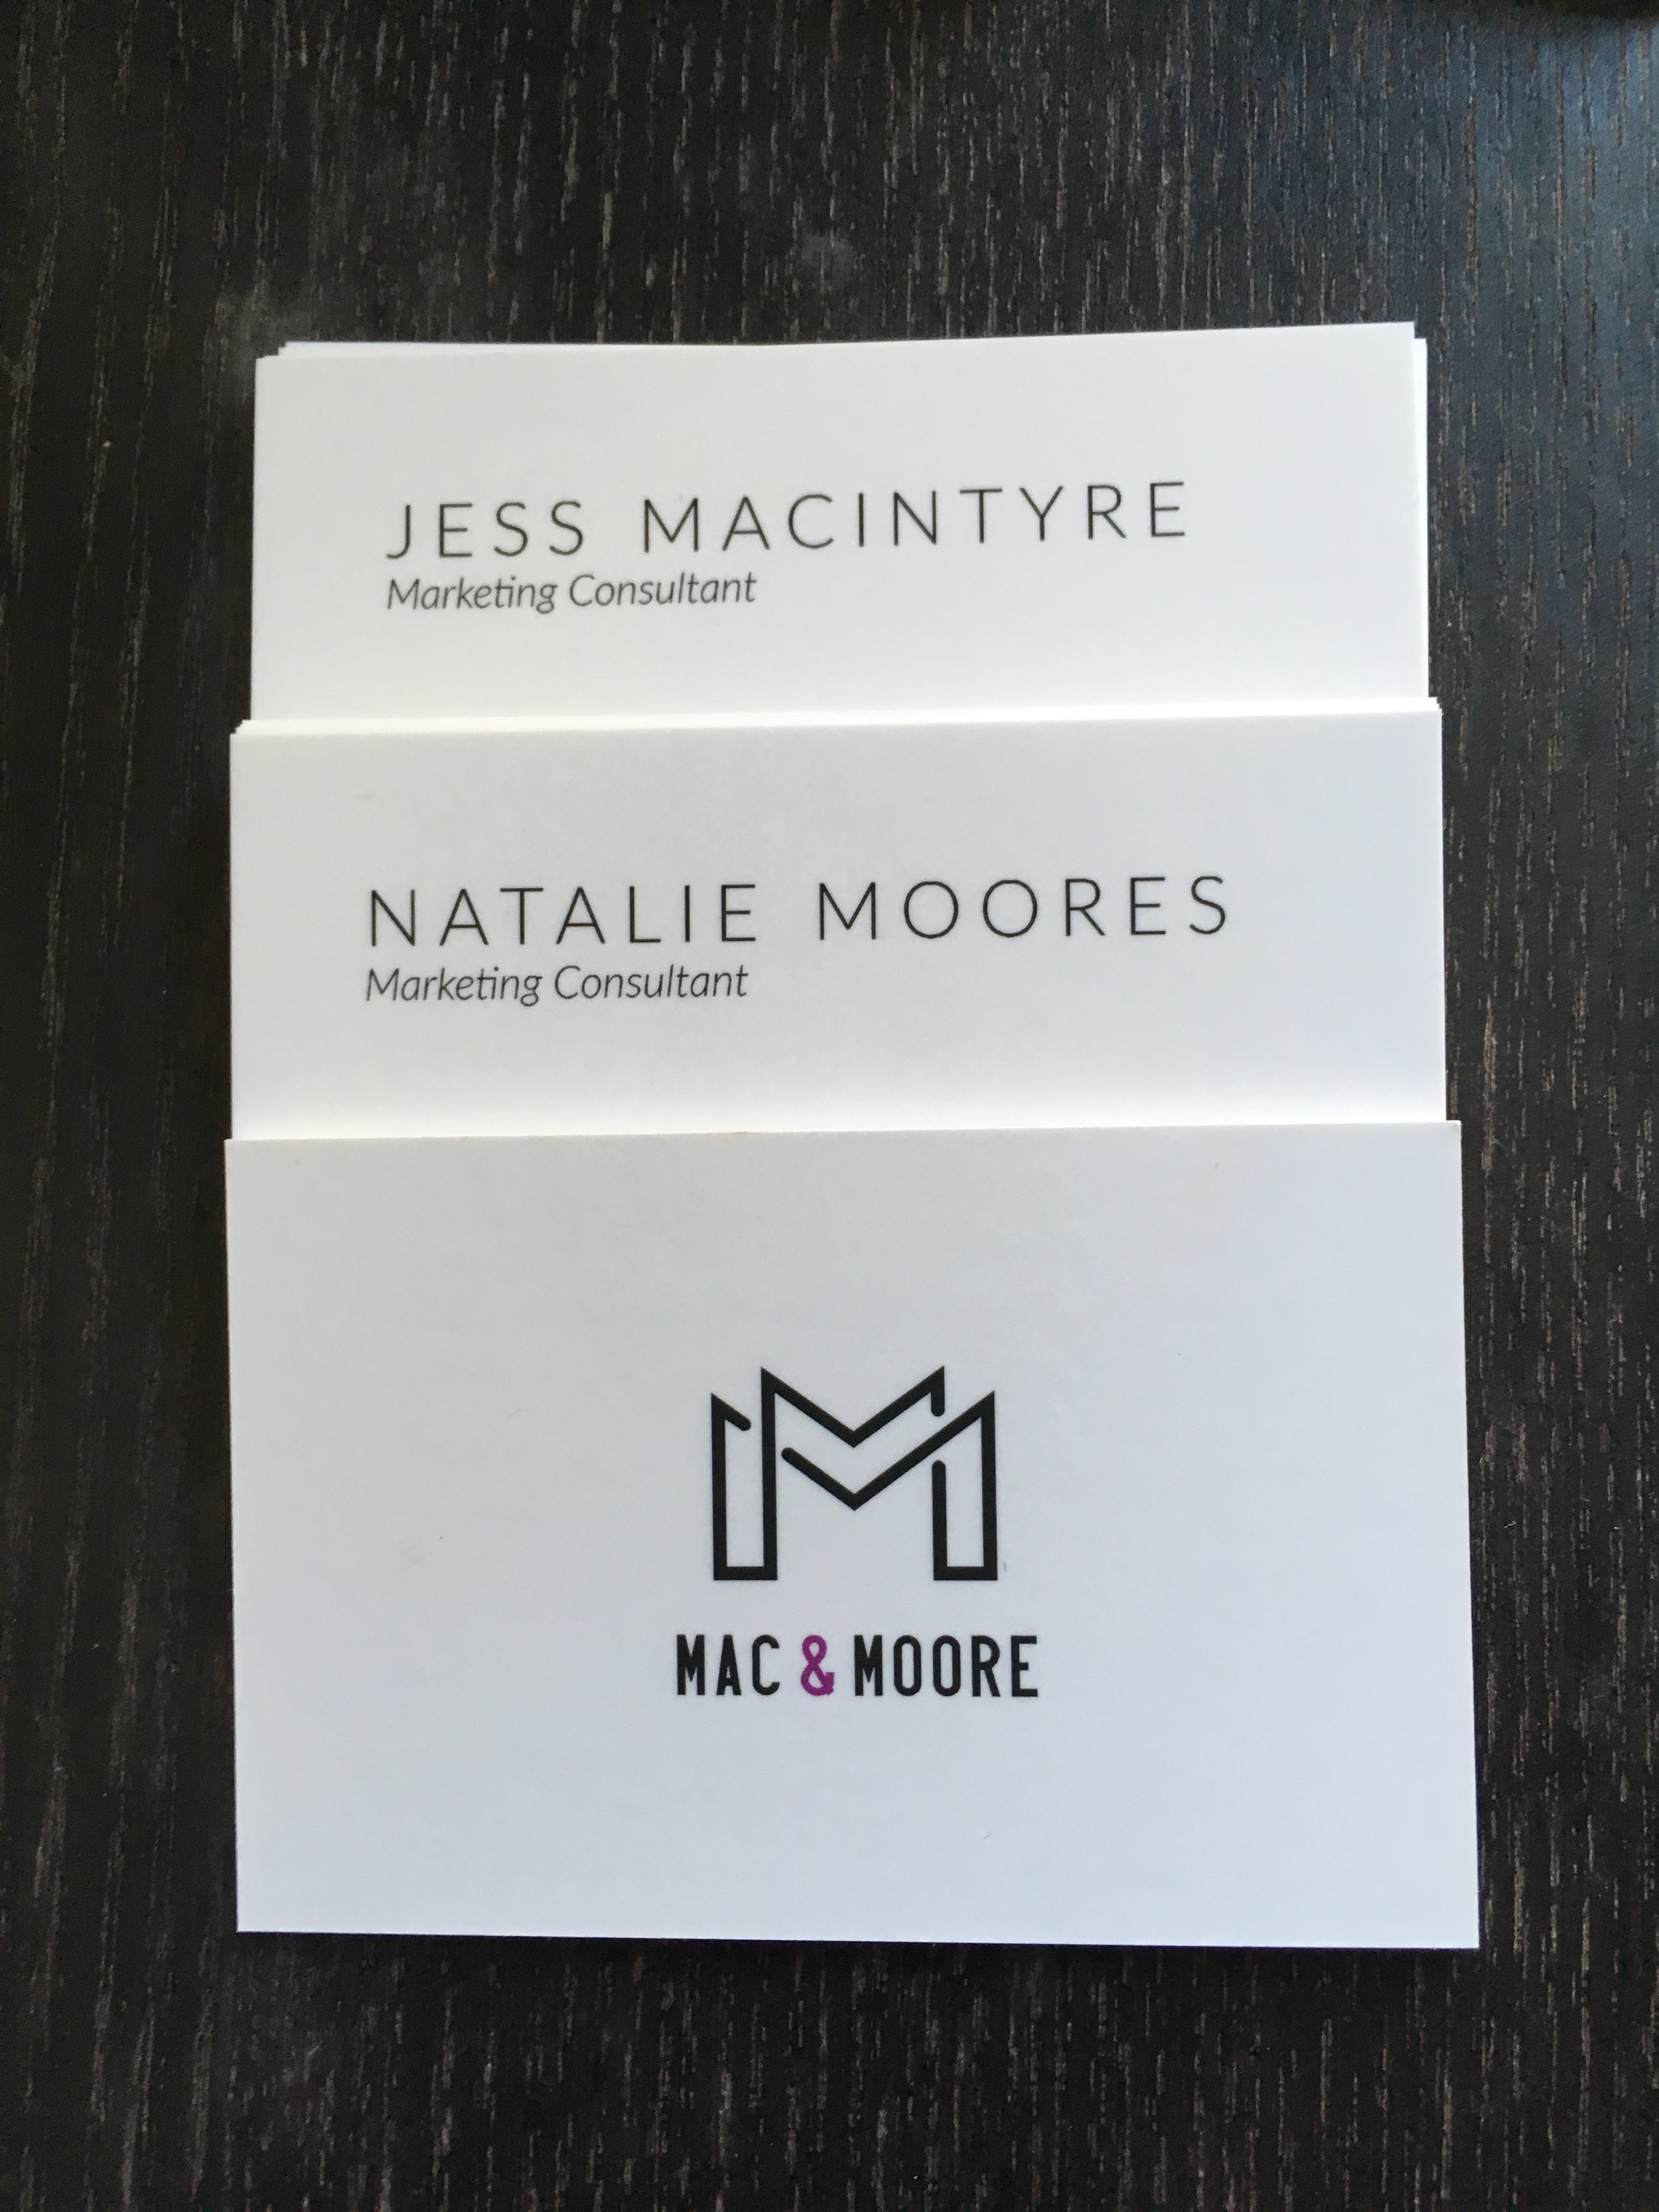 Being able to hand out beautiful business cards really helps psychologically with confidence!